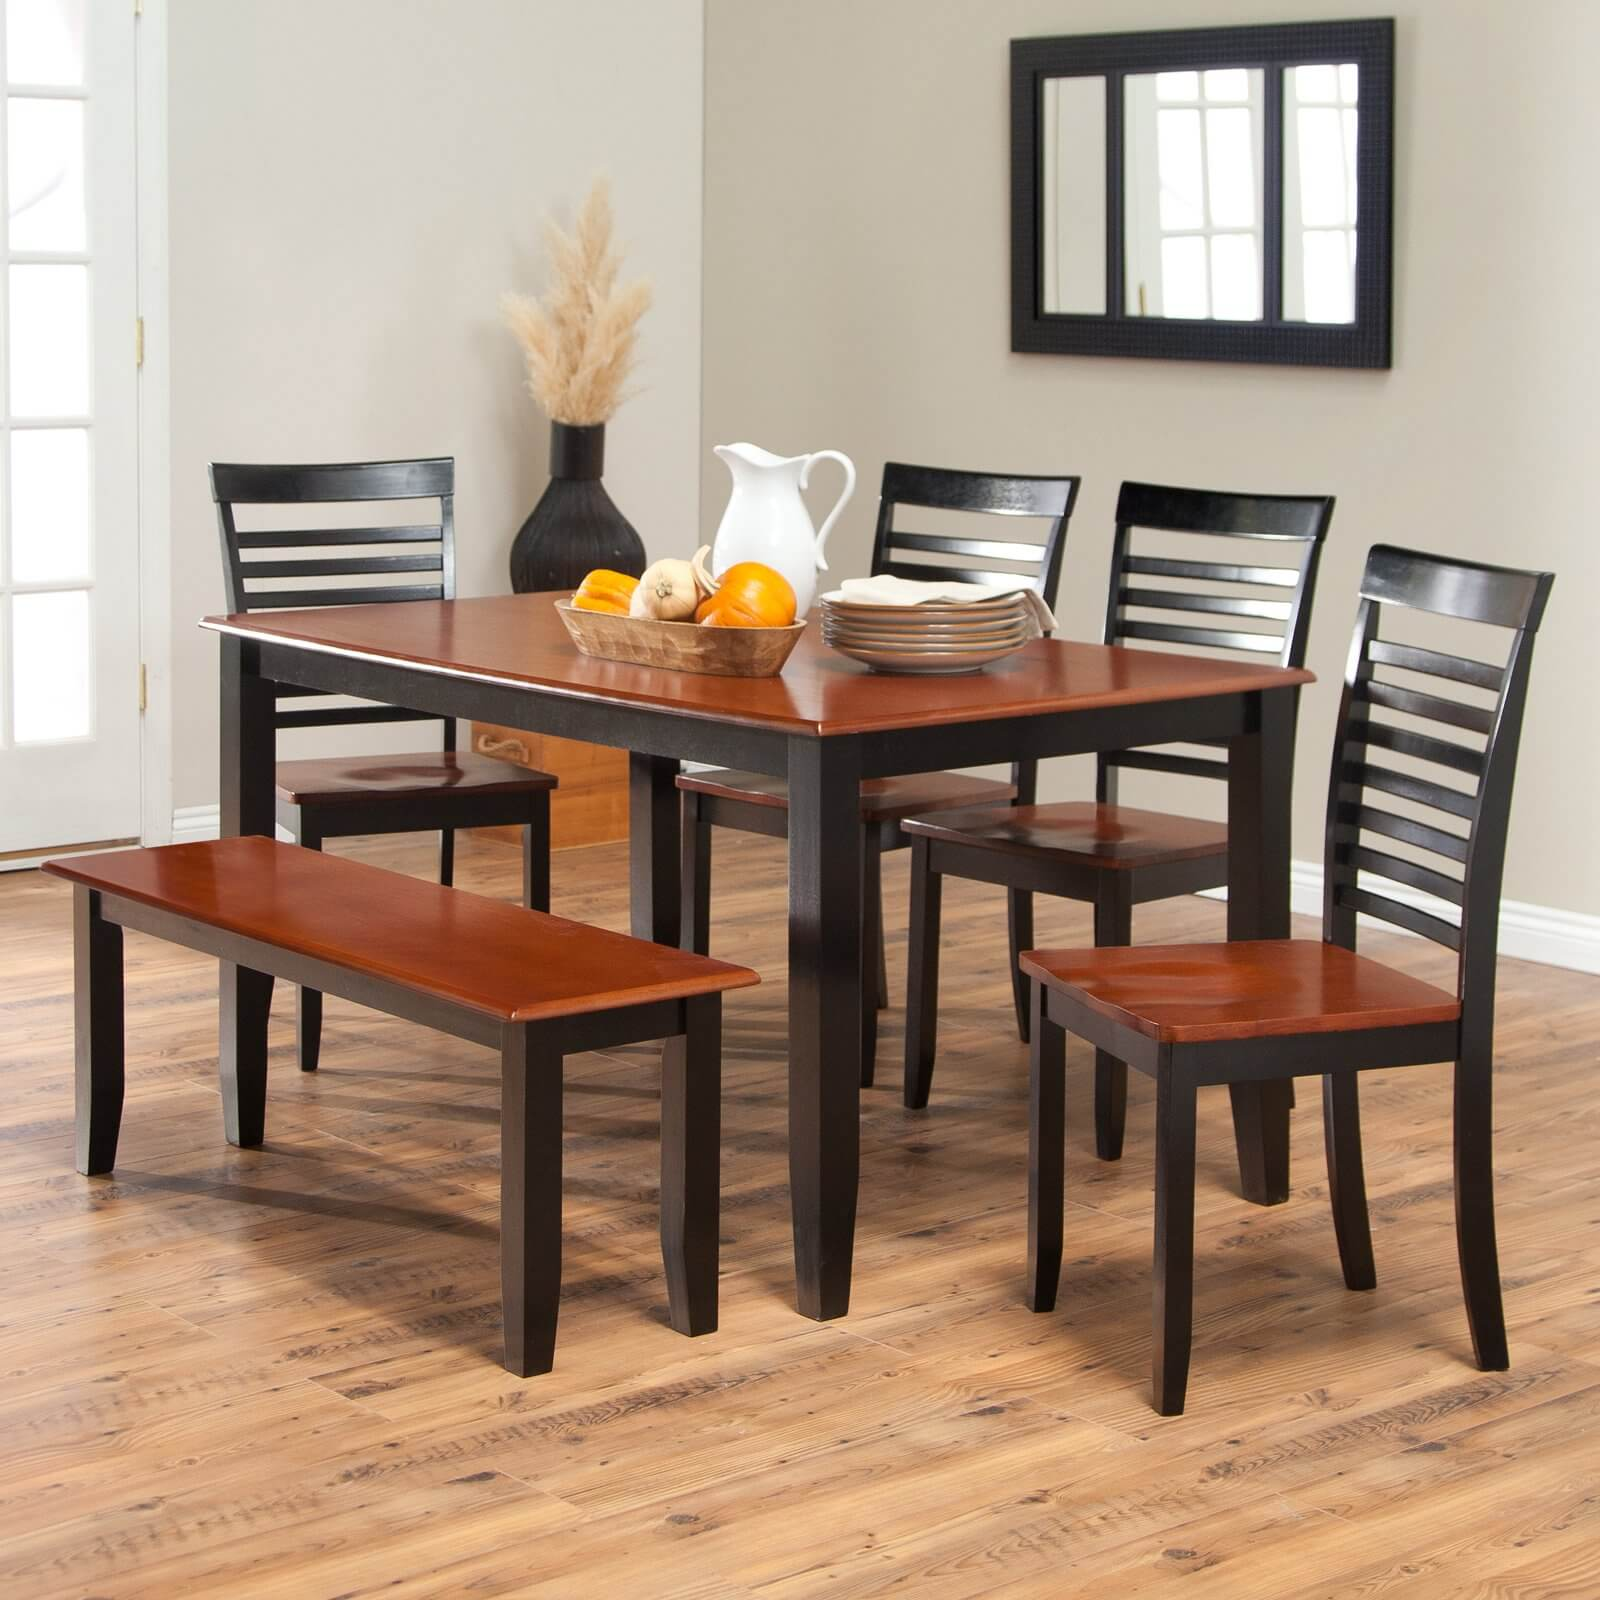 Simple two-toned dining set with bench. The seats and table top are ...